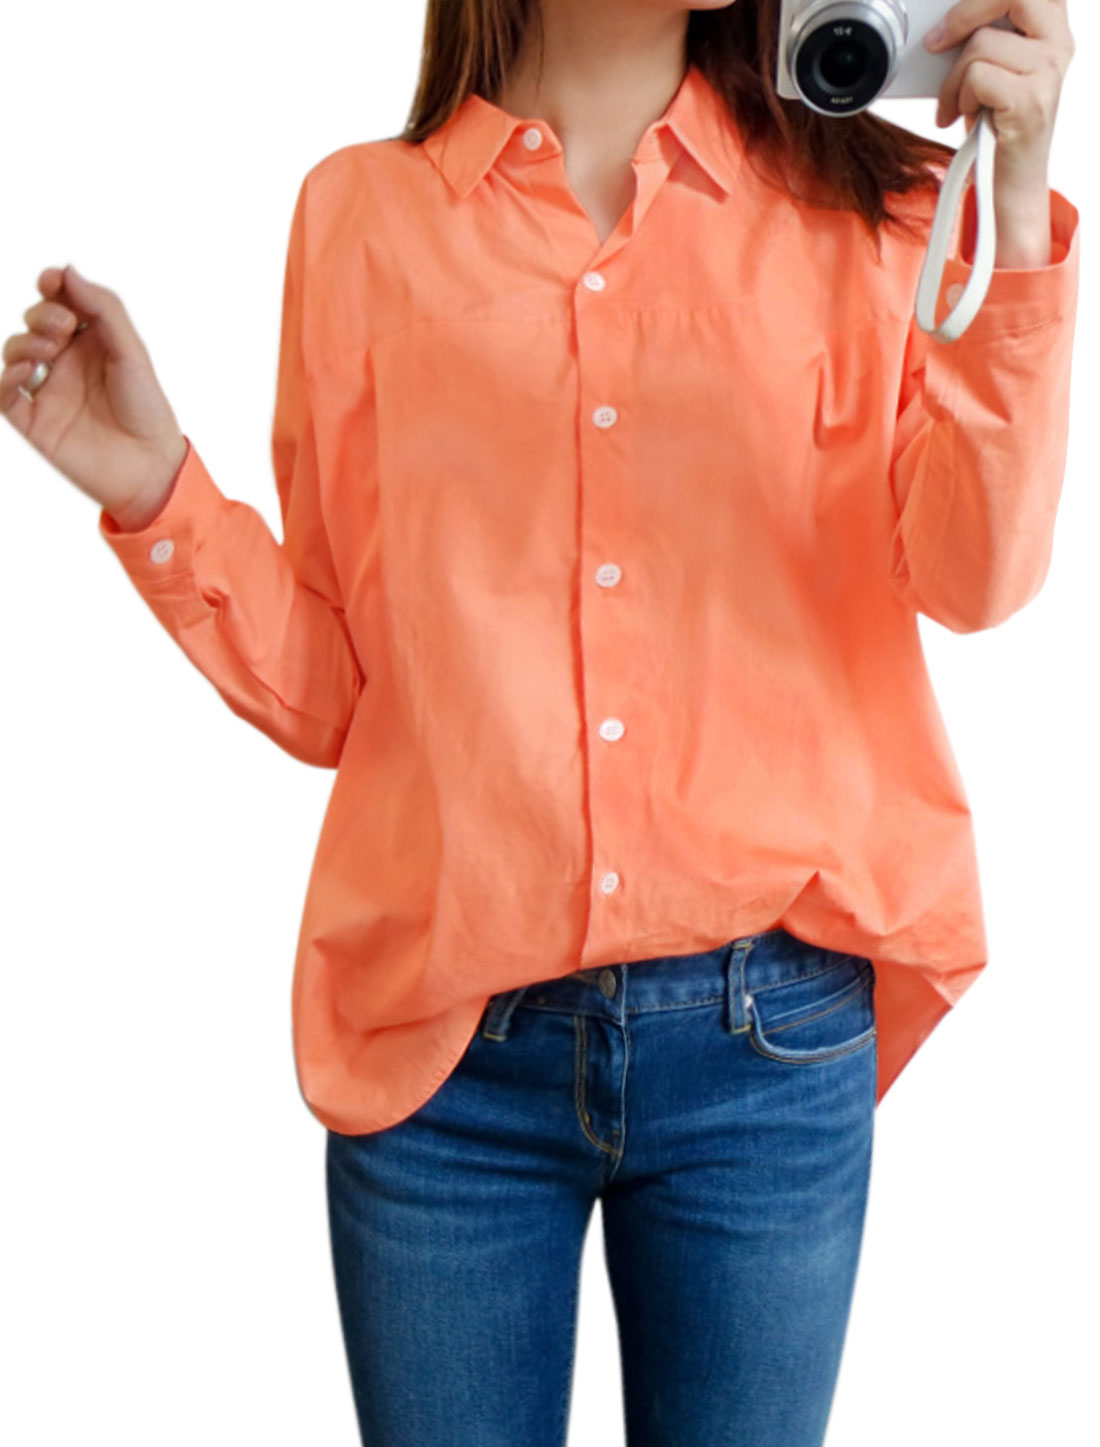 Women Collared Round Hem Batwing Sleeves Tunic Shirt Orange XS